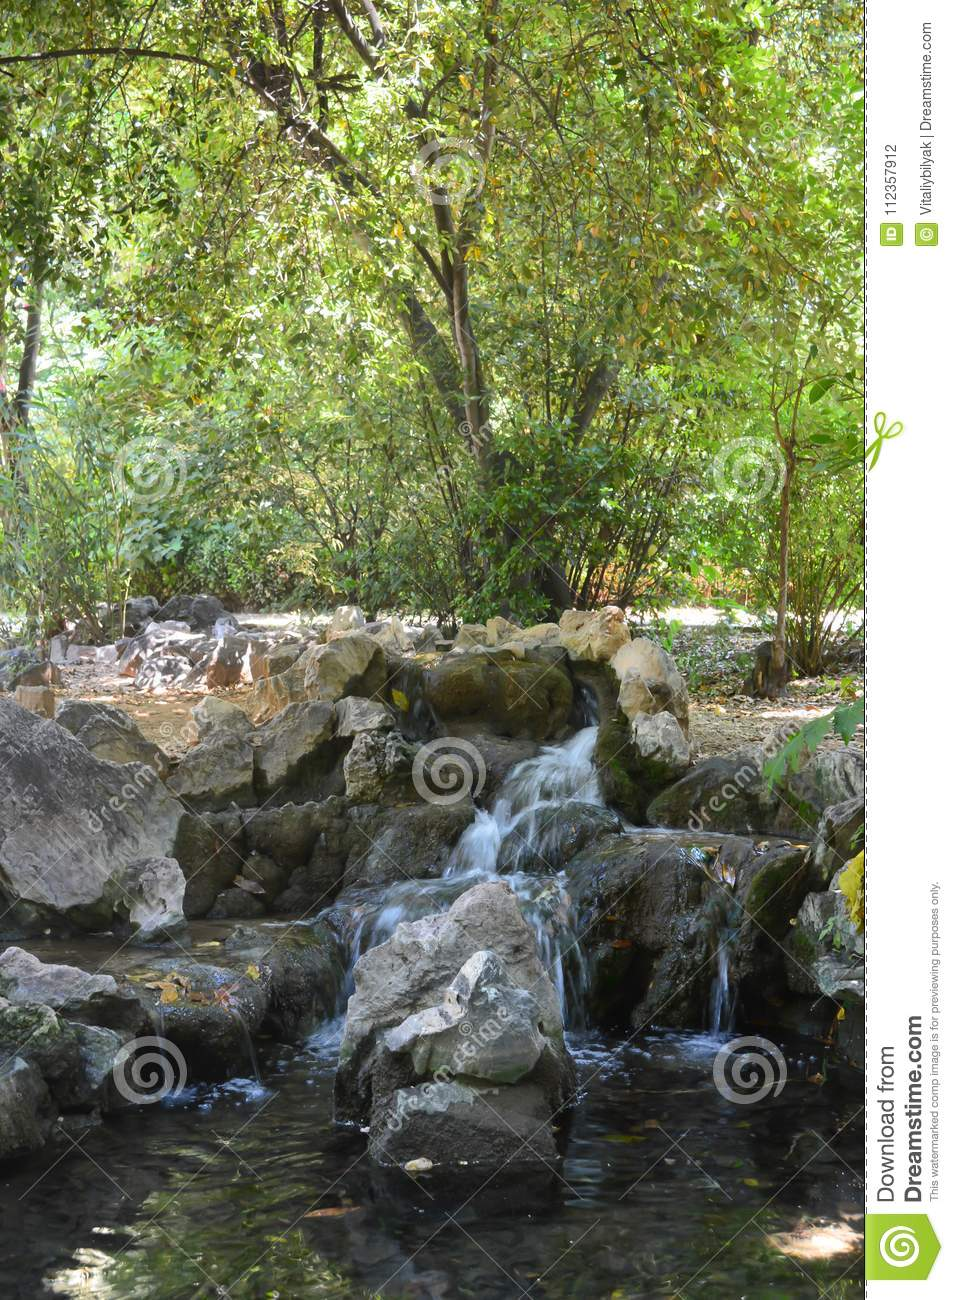 Small Waterfall in National Garden in Athens, Greece on June 23, 2017.